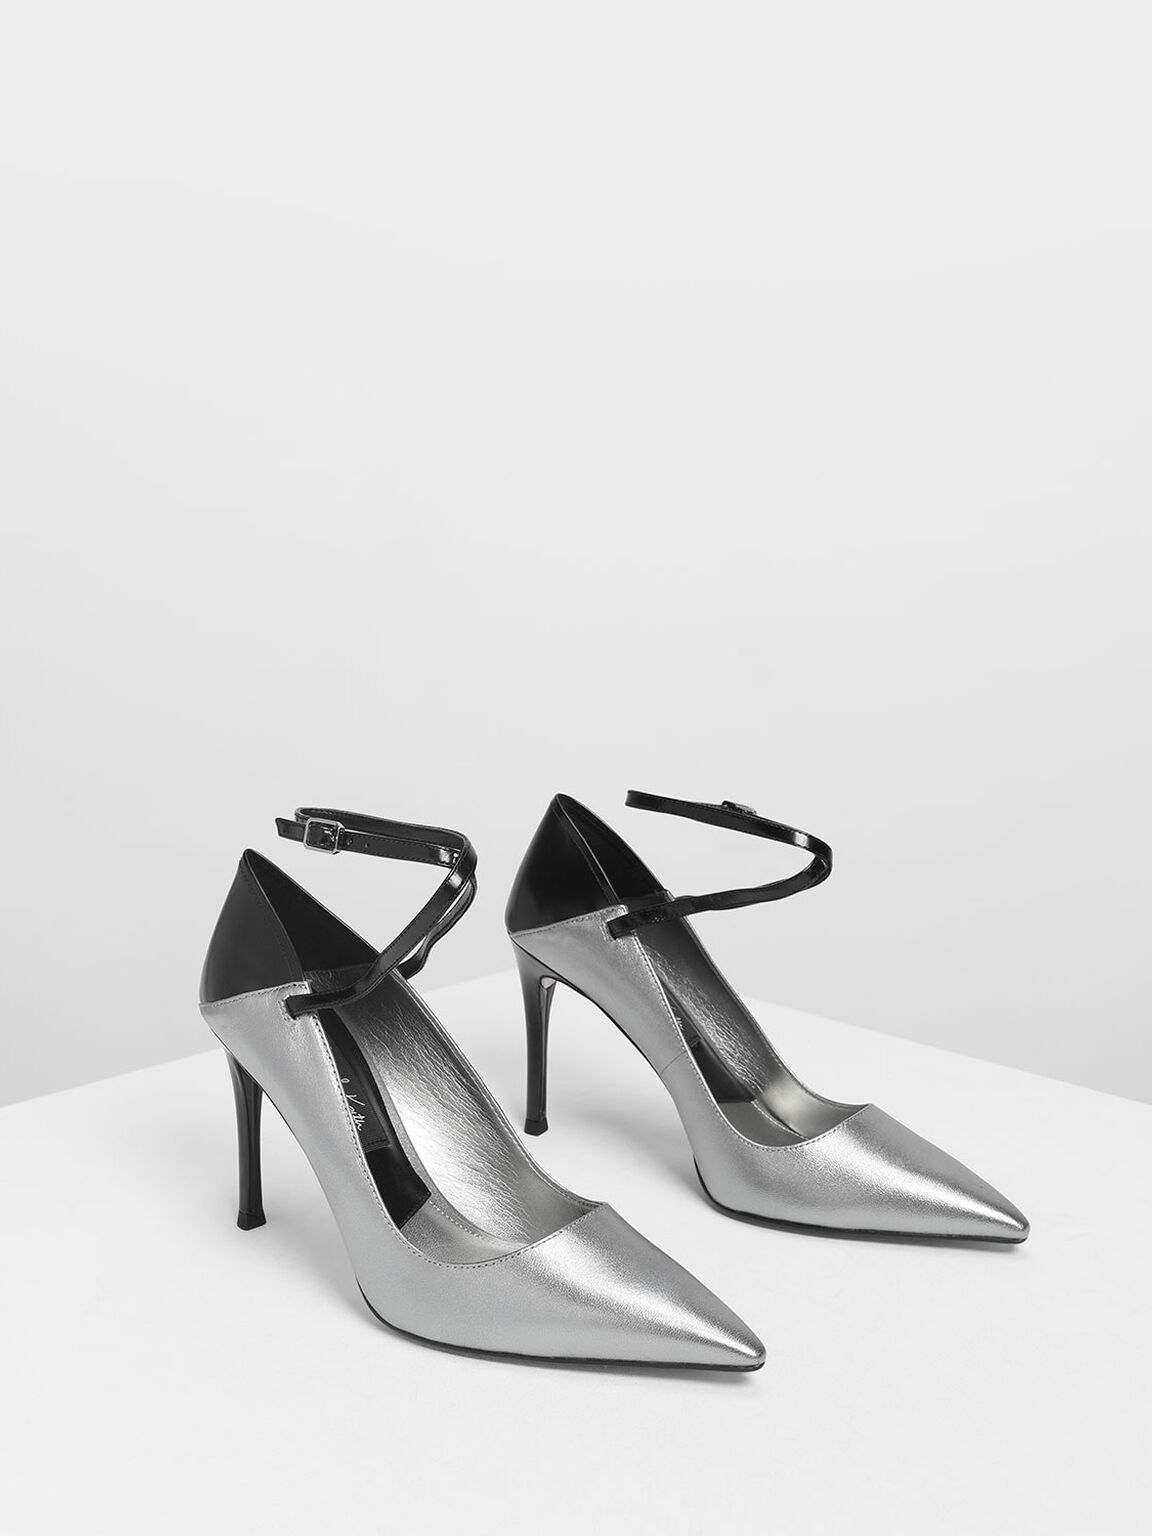 Criss Cross Ankle Strap Leather Heels, Pewter, hi-res